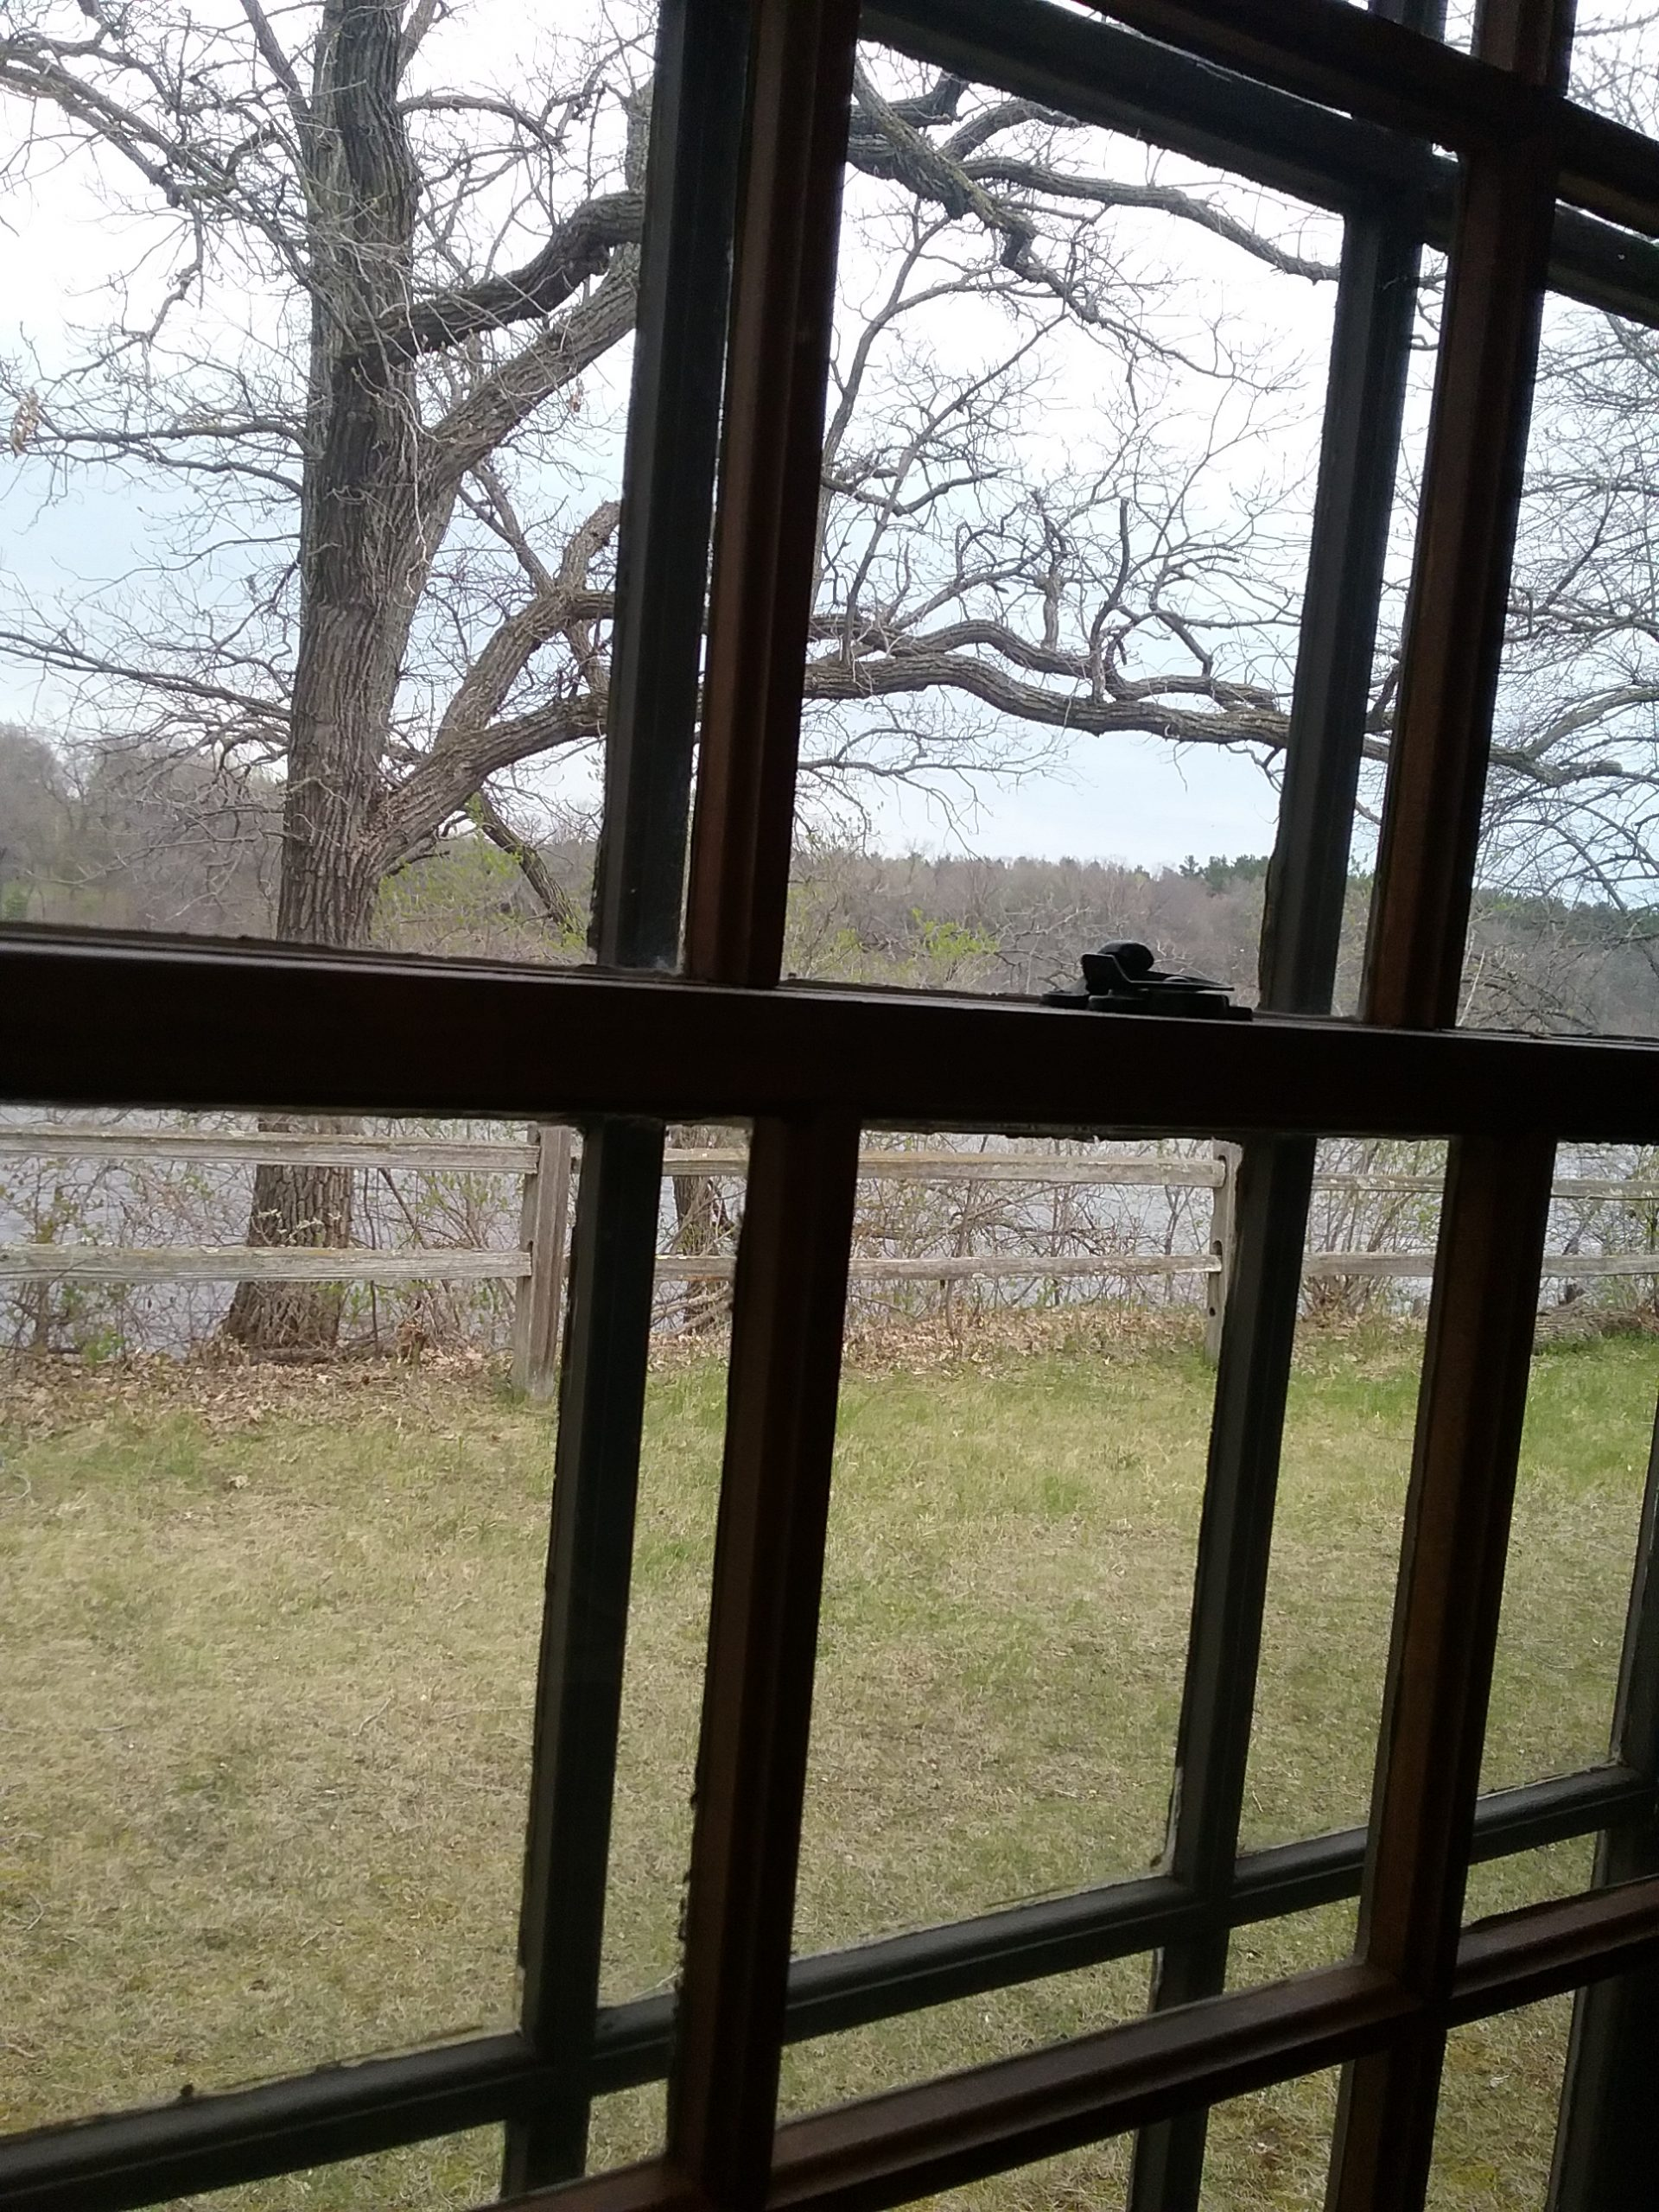 This shows the proximity of the fence through the museum's window. Taken May 11, 2019.